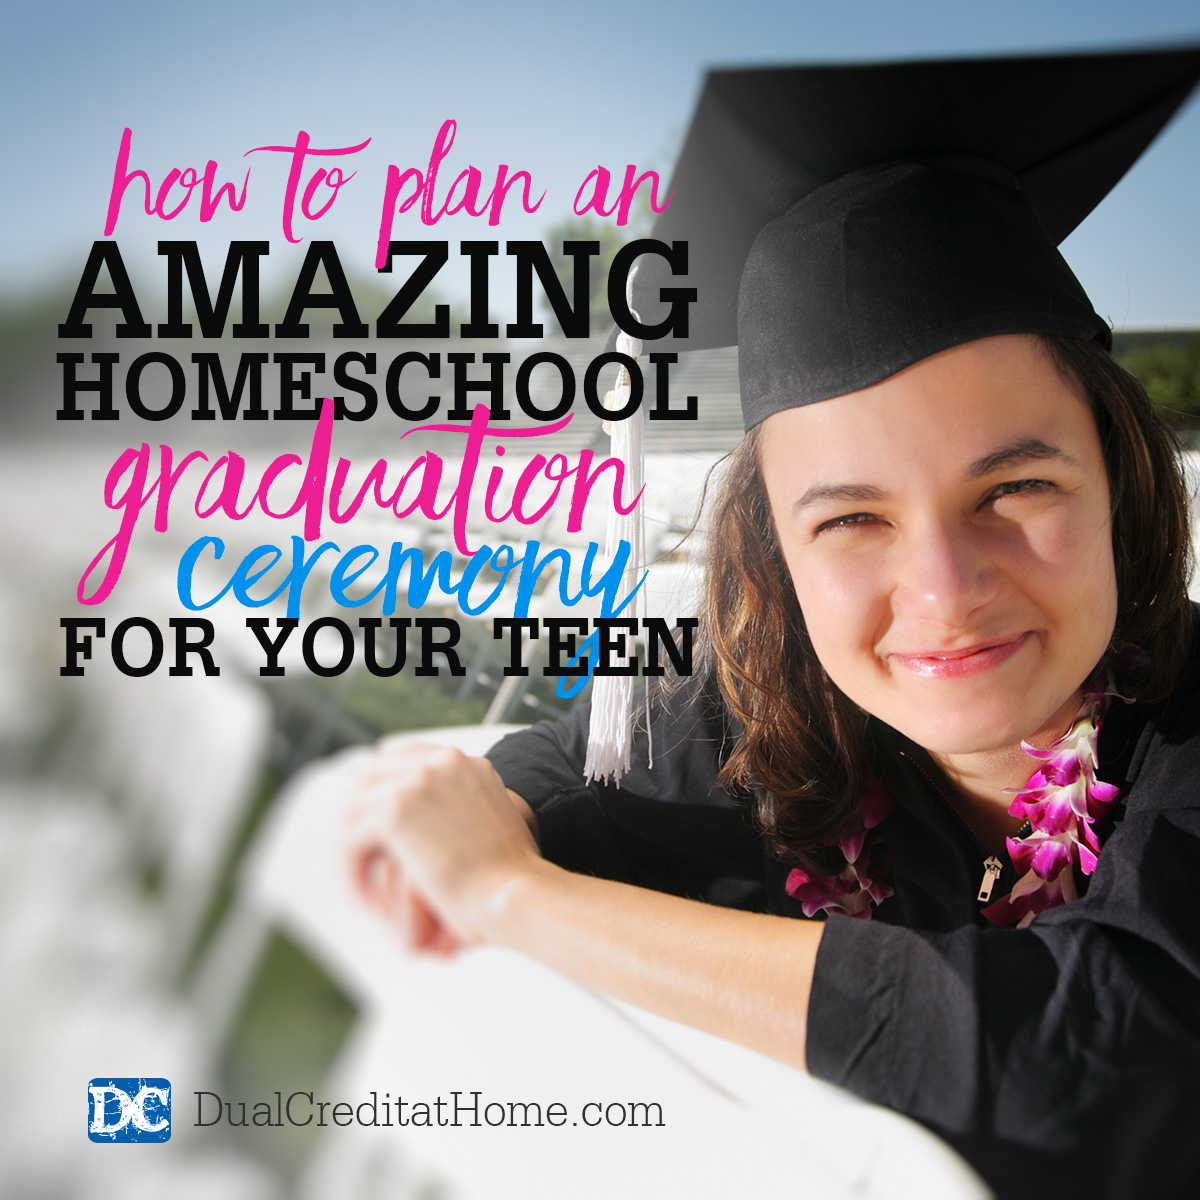 How to Plan an Amazing Homeschool Graduation Ceremony for Your Teen